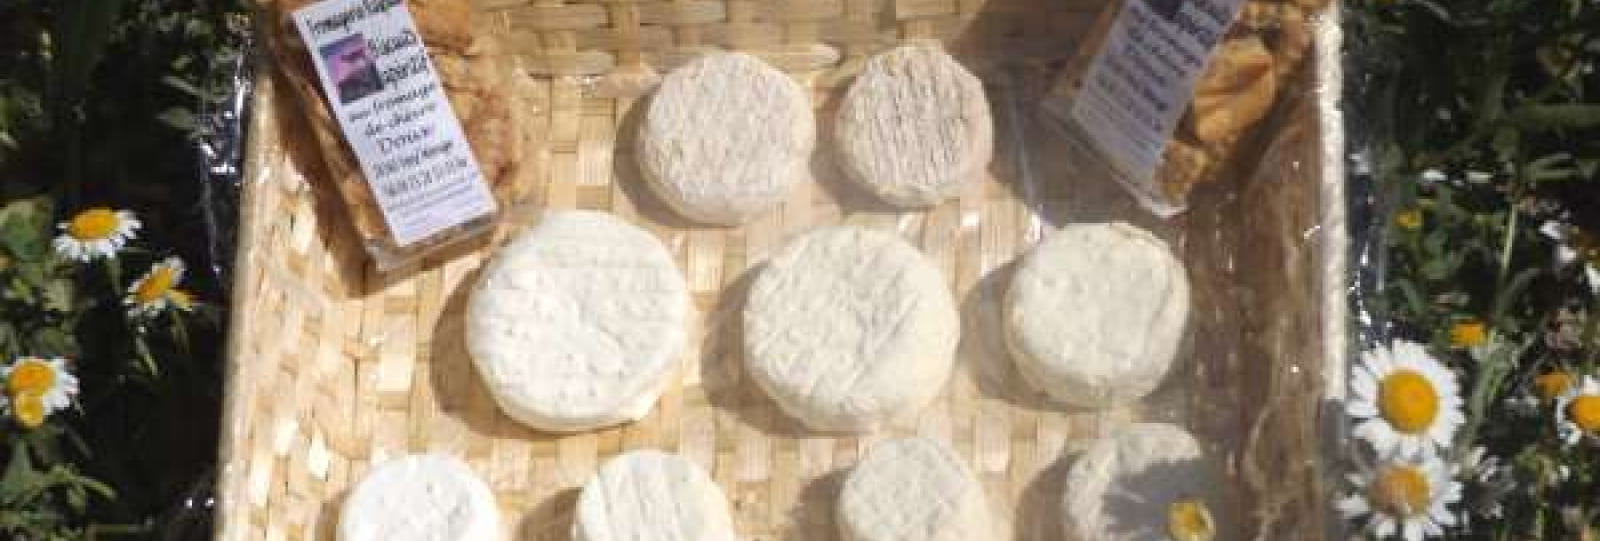 Fromagerie Raspail